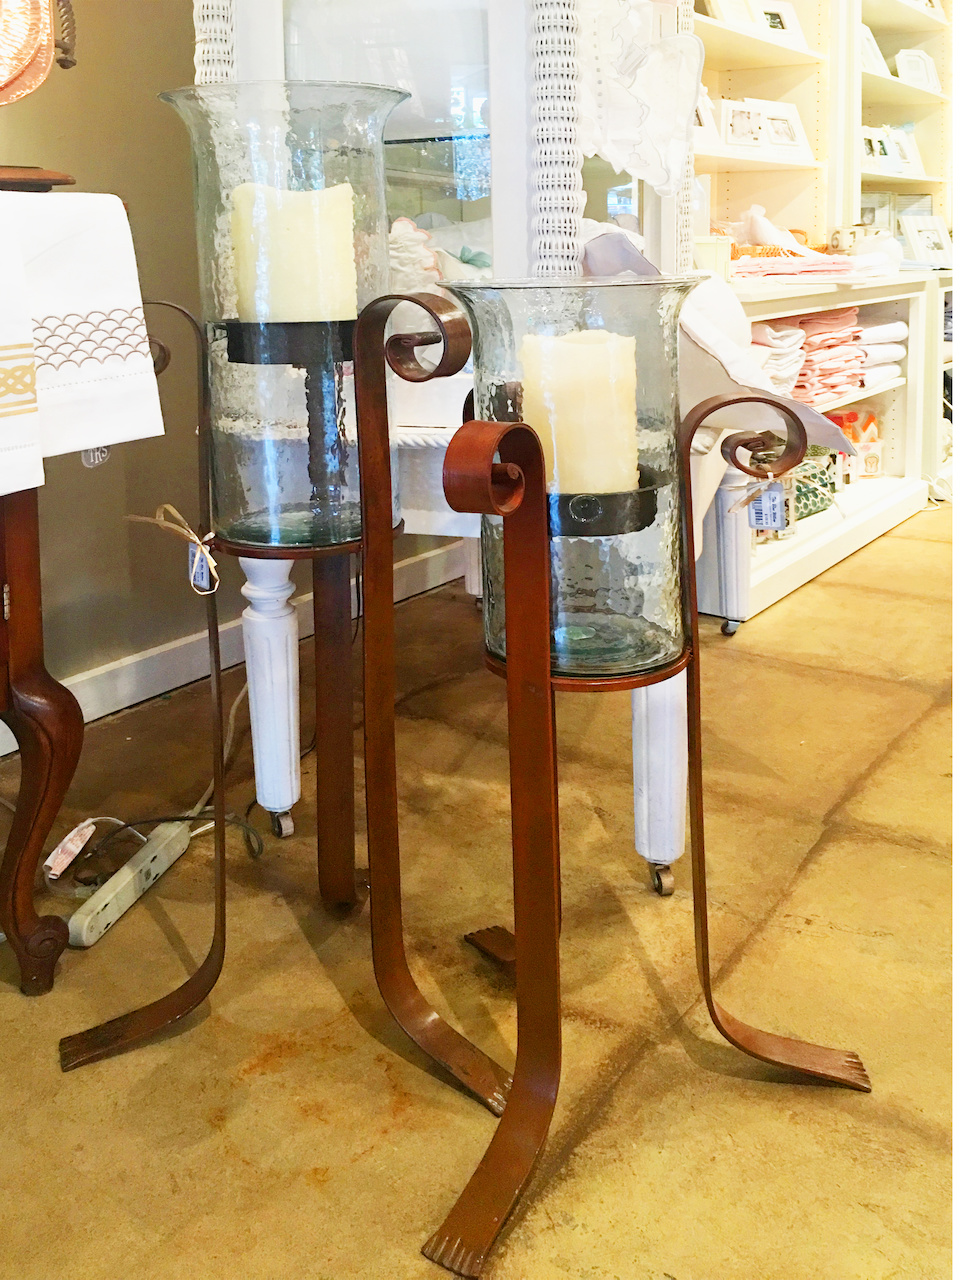 Forged iron candle holder stands, $188.95 for small and $218.95 for large, at The Blue Willow